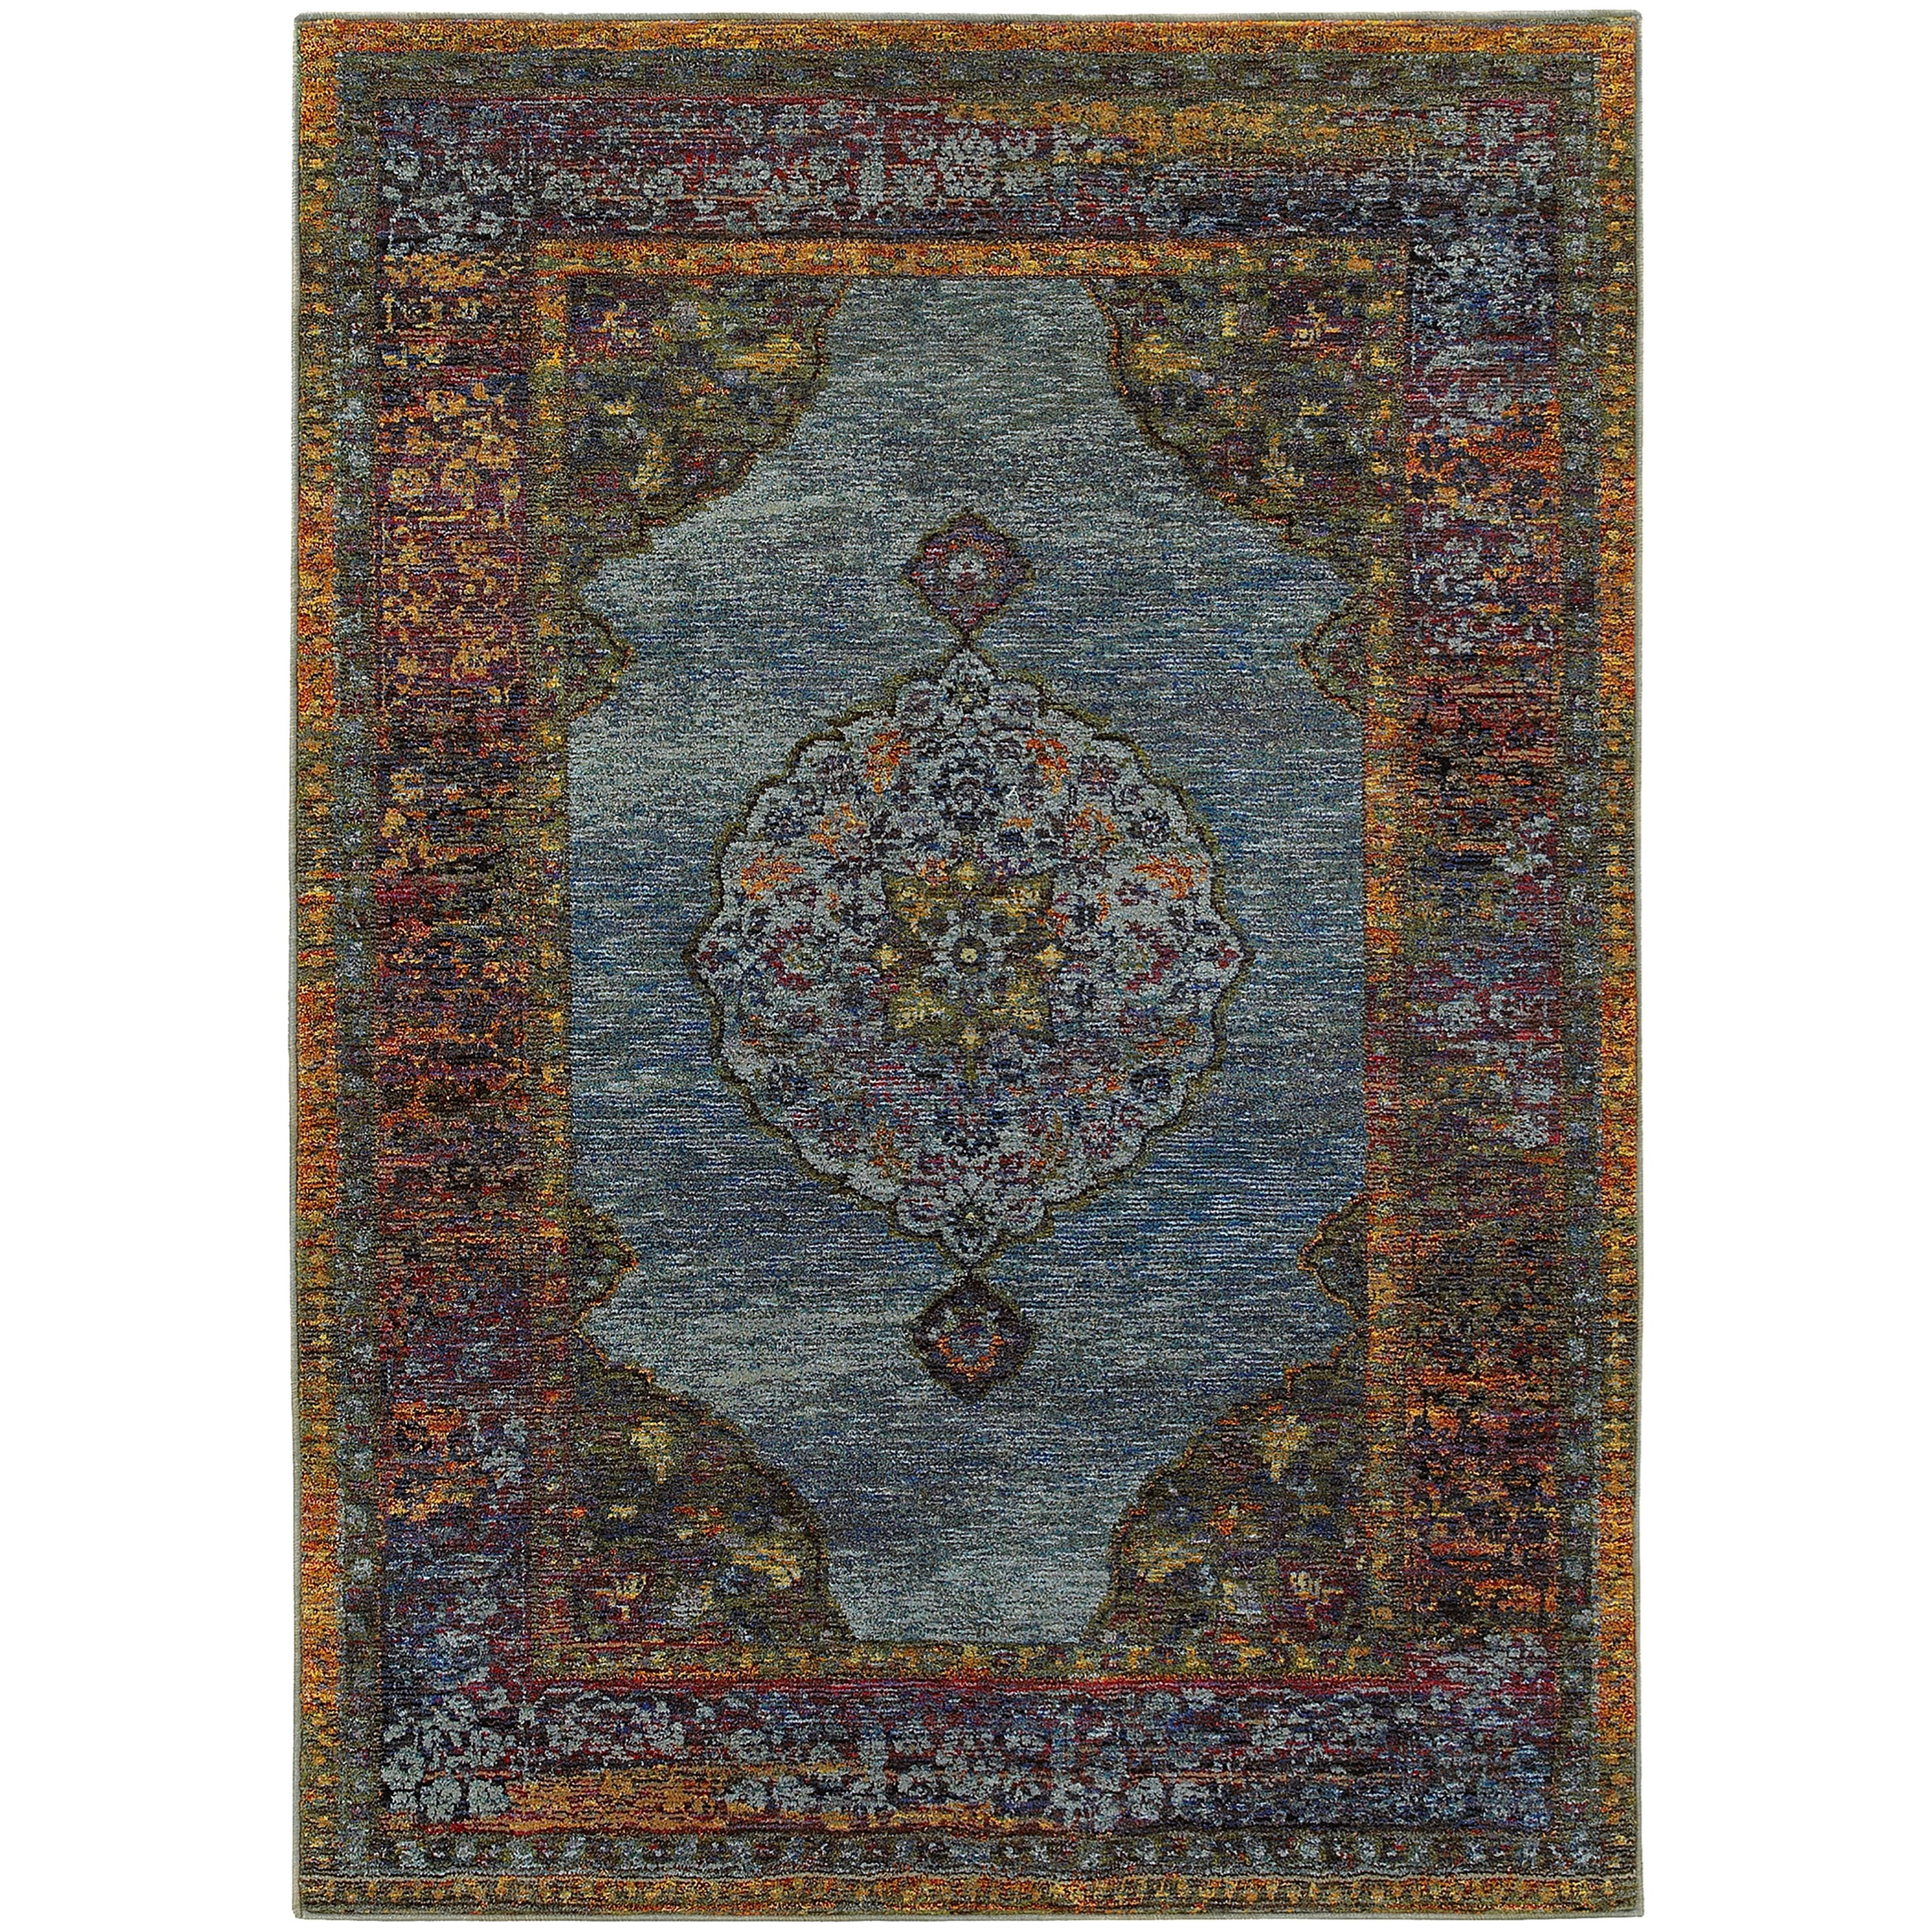 "Andorra 3' 3"" X  5' 2"" Traditional Blue/ Multi Recta by Oriental Weavers at Steger's Furniture"